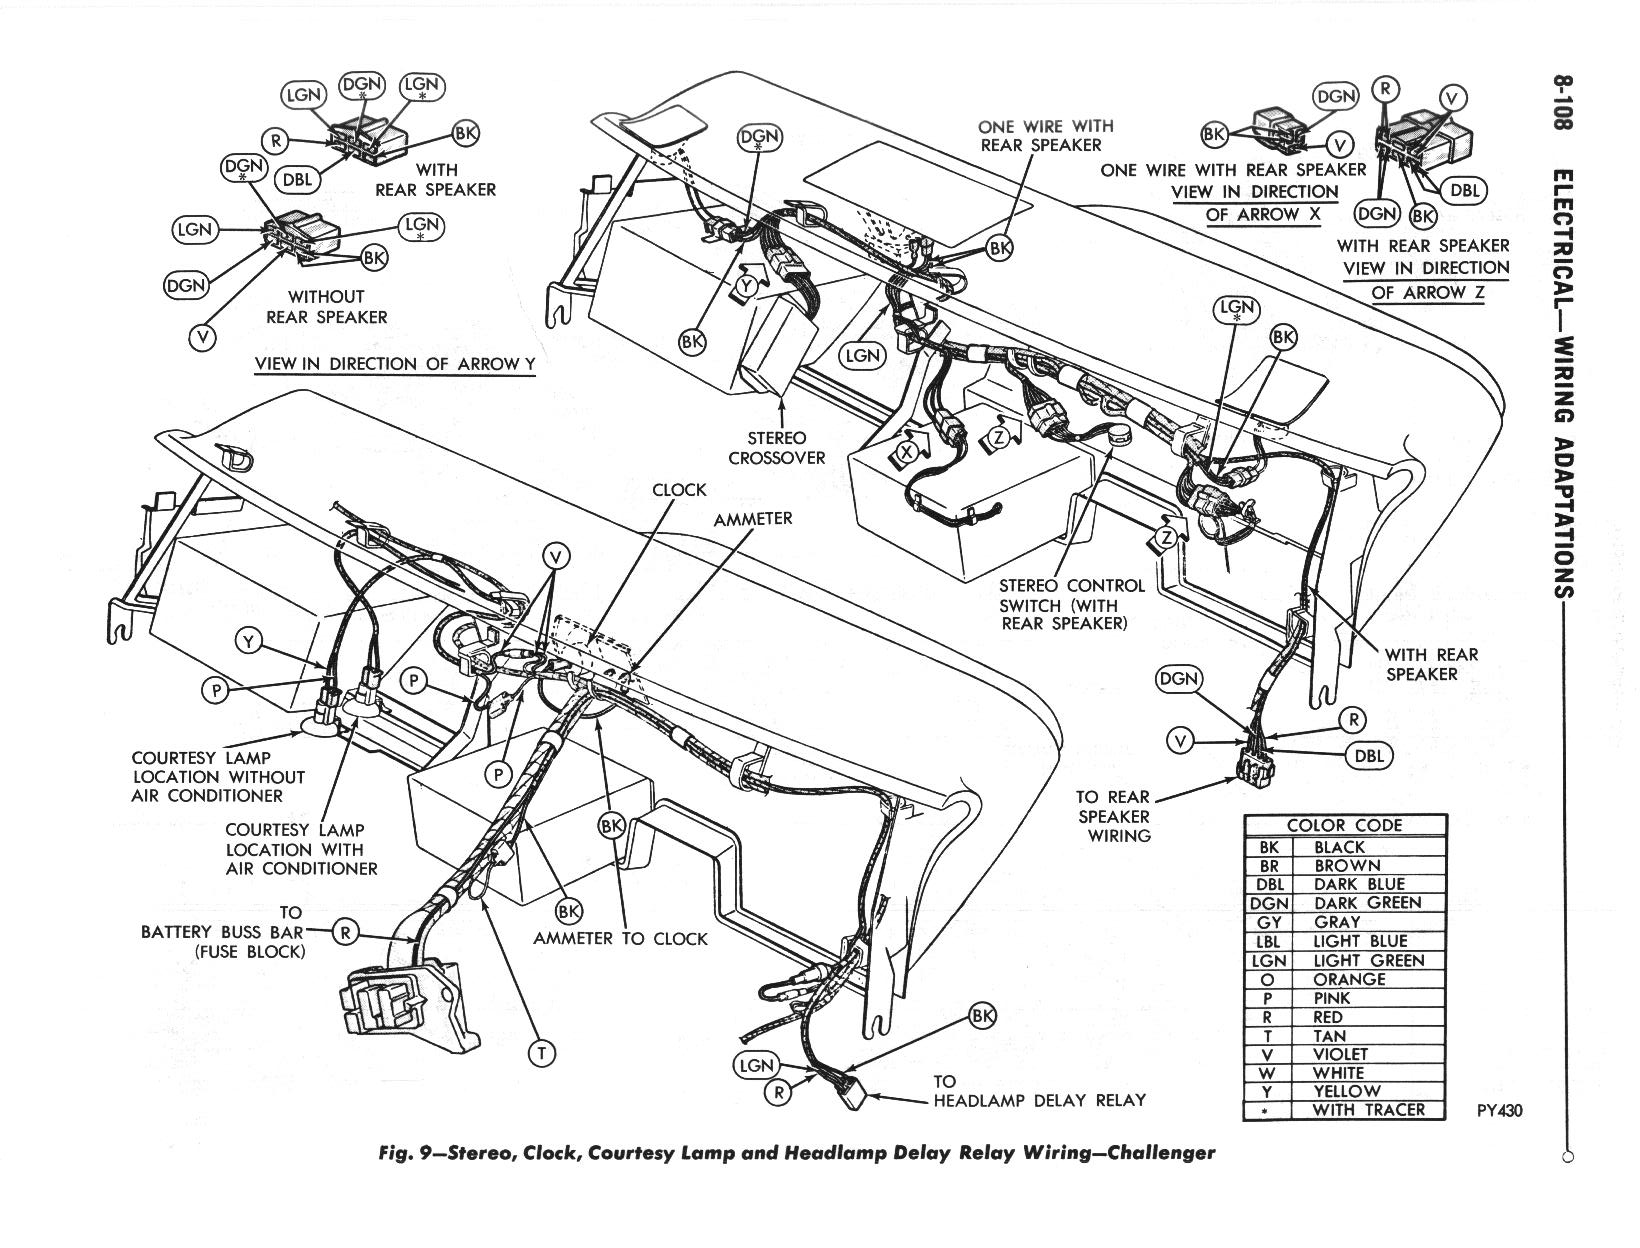 1970 dodge challenger dash wiring diagram 1970 wiring diagrams image 1970 dodge charger wiring diagram nilza net